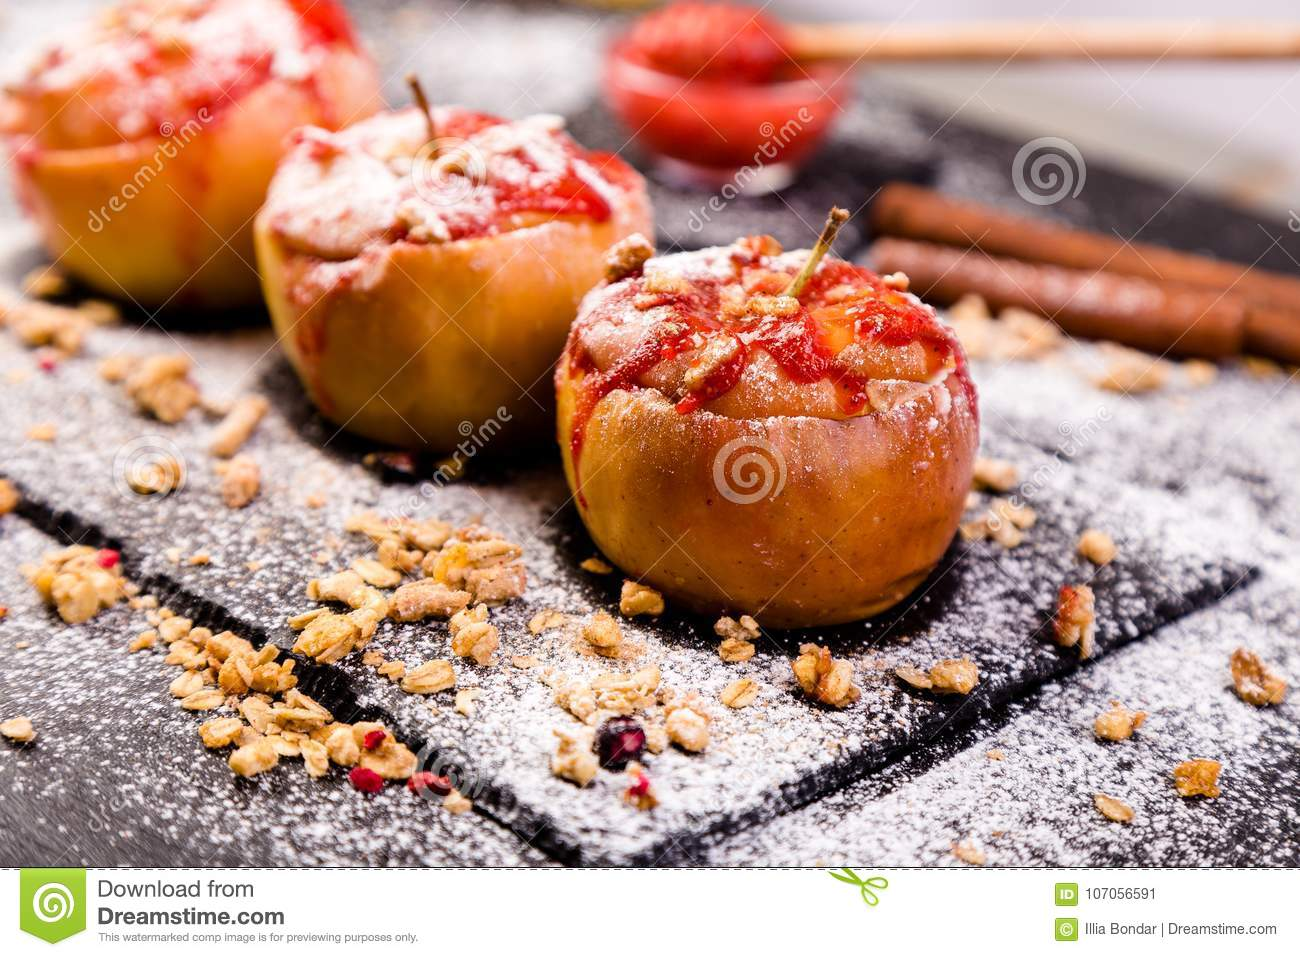 Red Baked Apples Stuffed Cottage Cheese And Granola